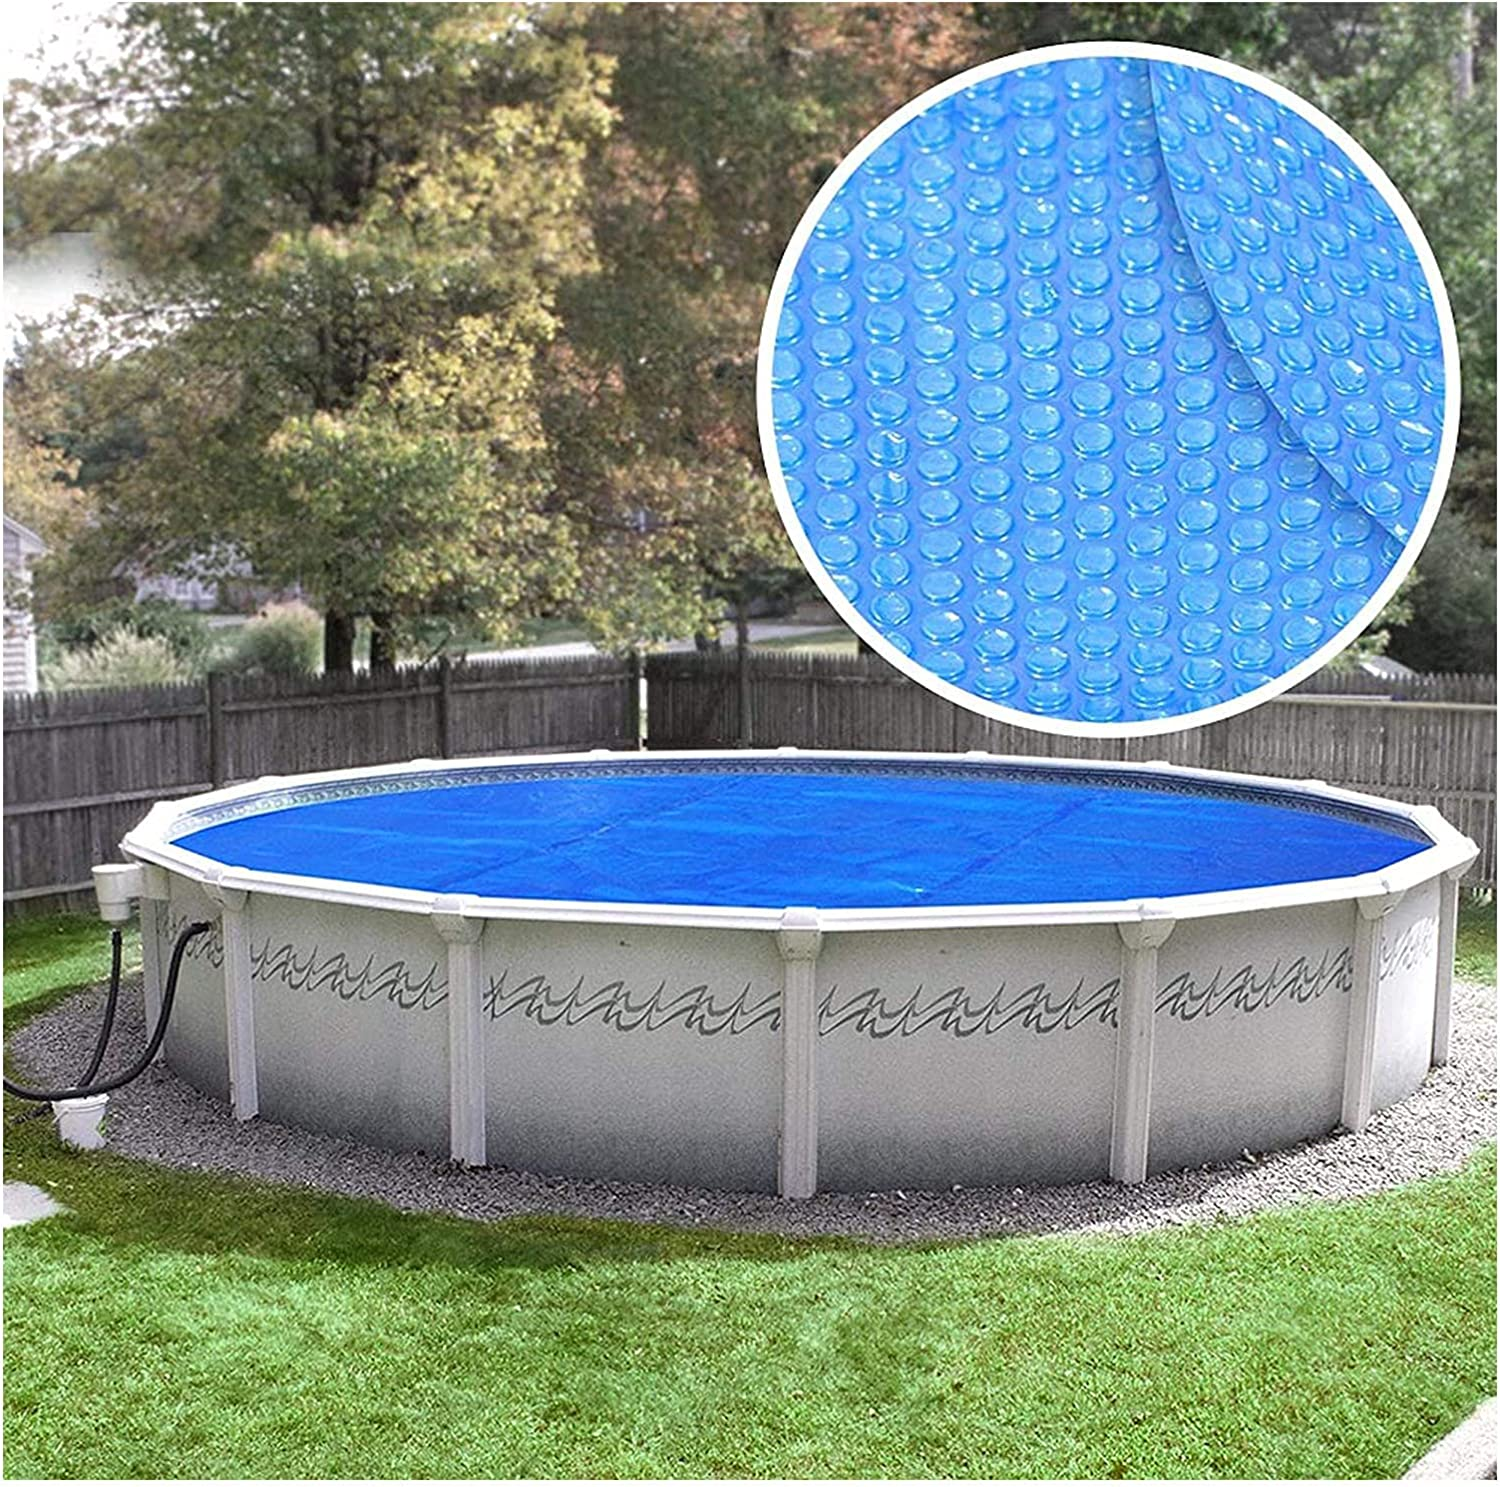 YANRU Solar Pool Covers for Free shipping / New Inground Th Round Popular standard - 4 Ft Blue